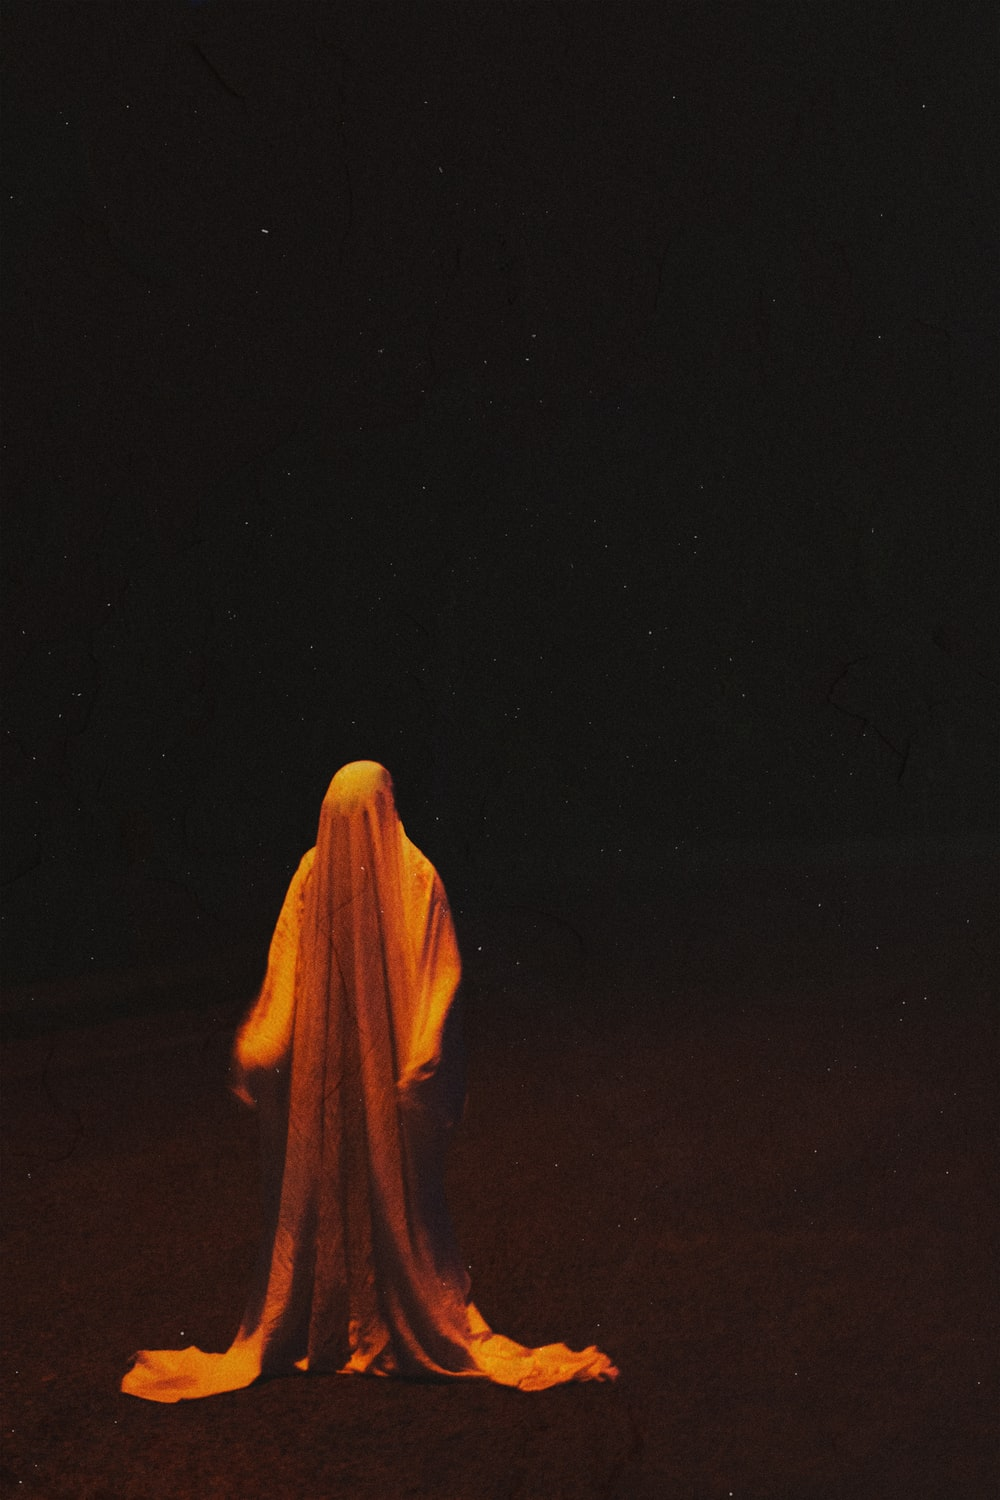 person in yellow hijab standing on brown field during night time